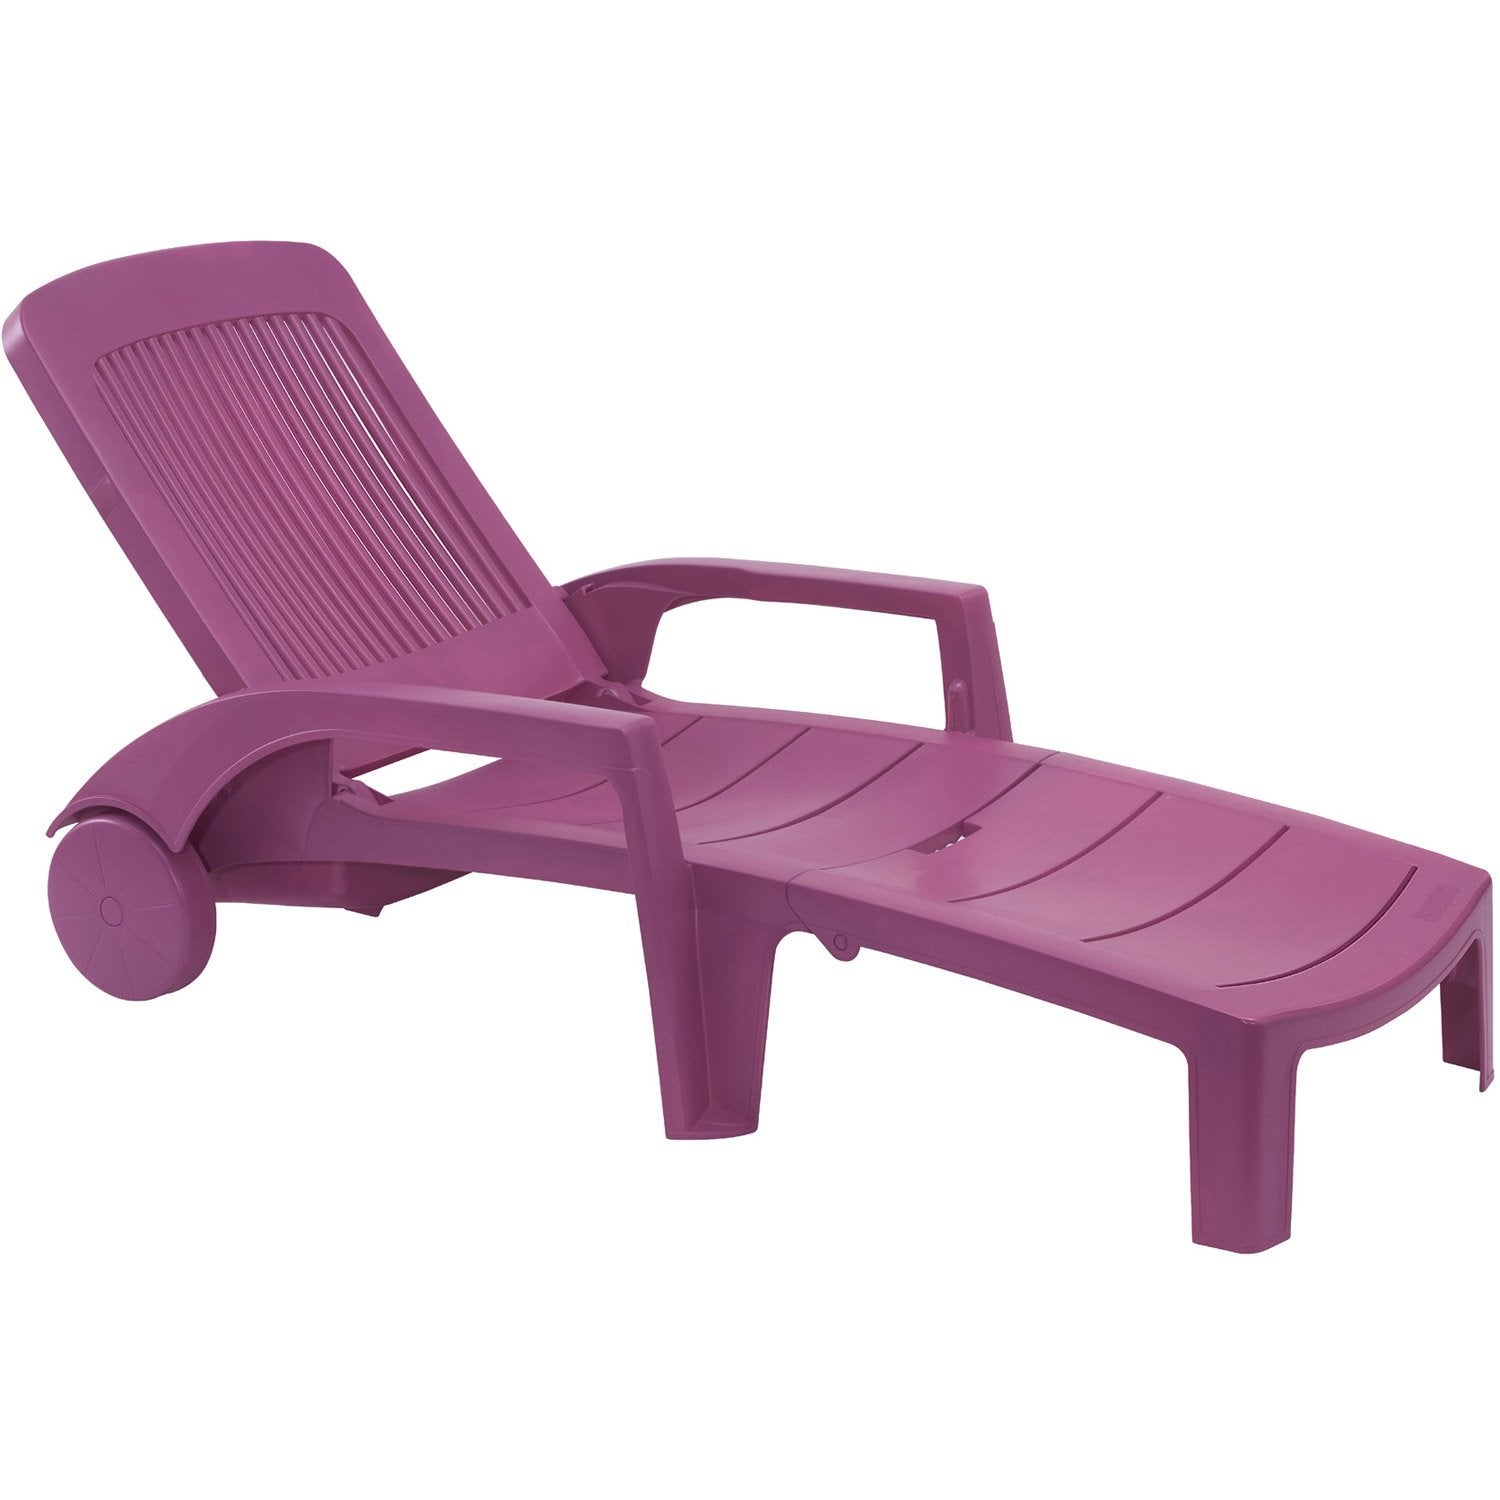 bain de soleil de jardin fidji couleur fuschia grosfillex leroy merlin. Black Bedroom Furniture Sets. Home Design Ideas